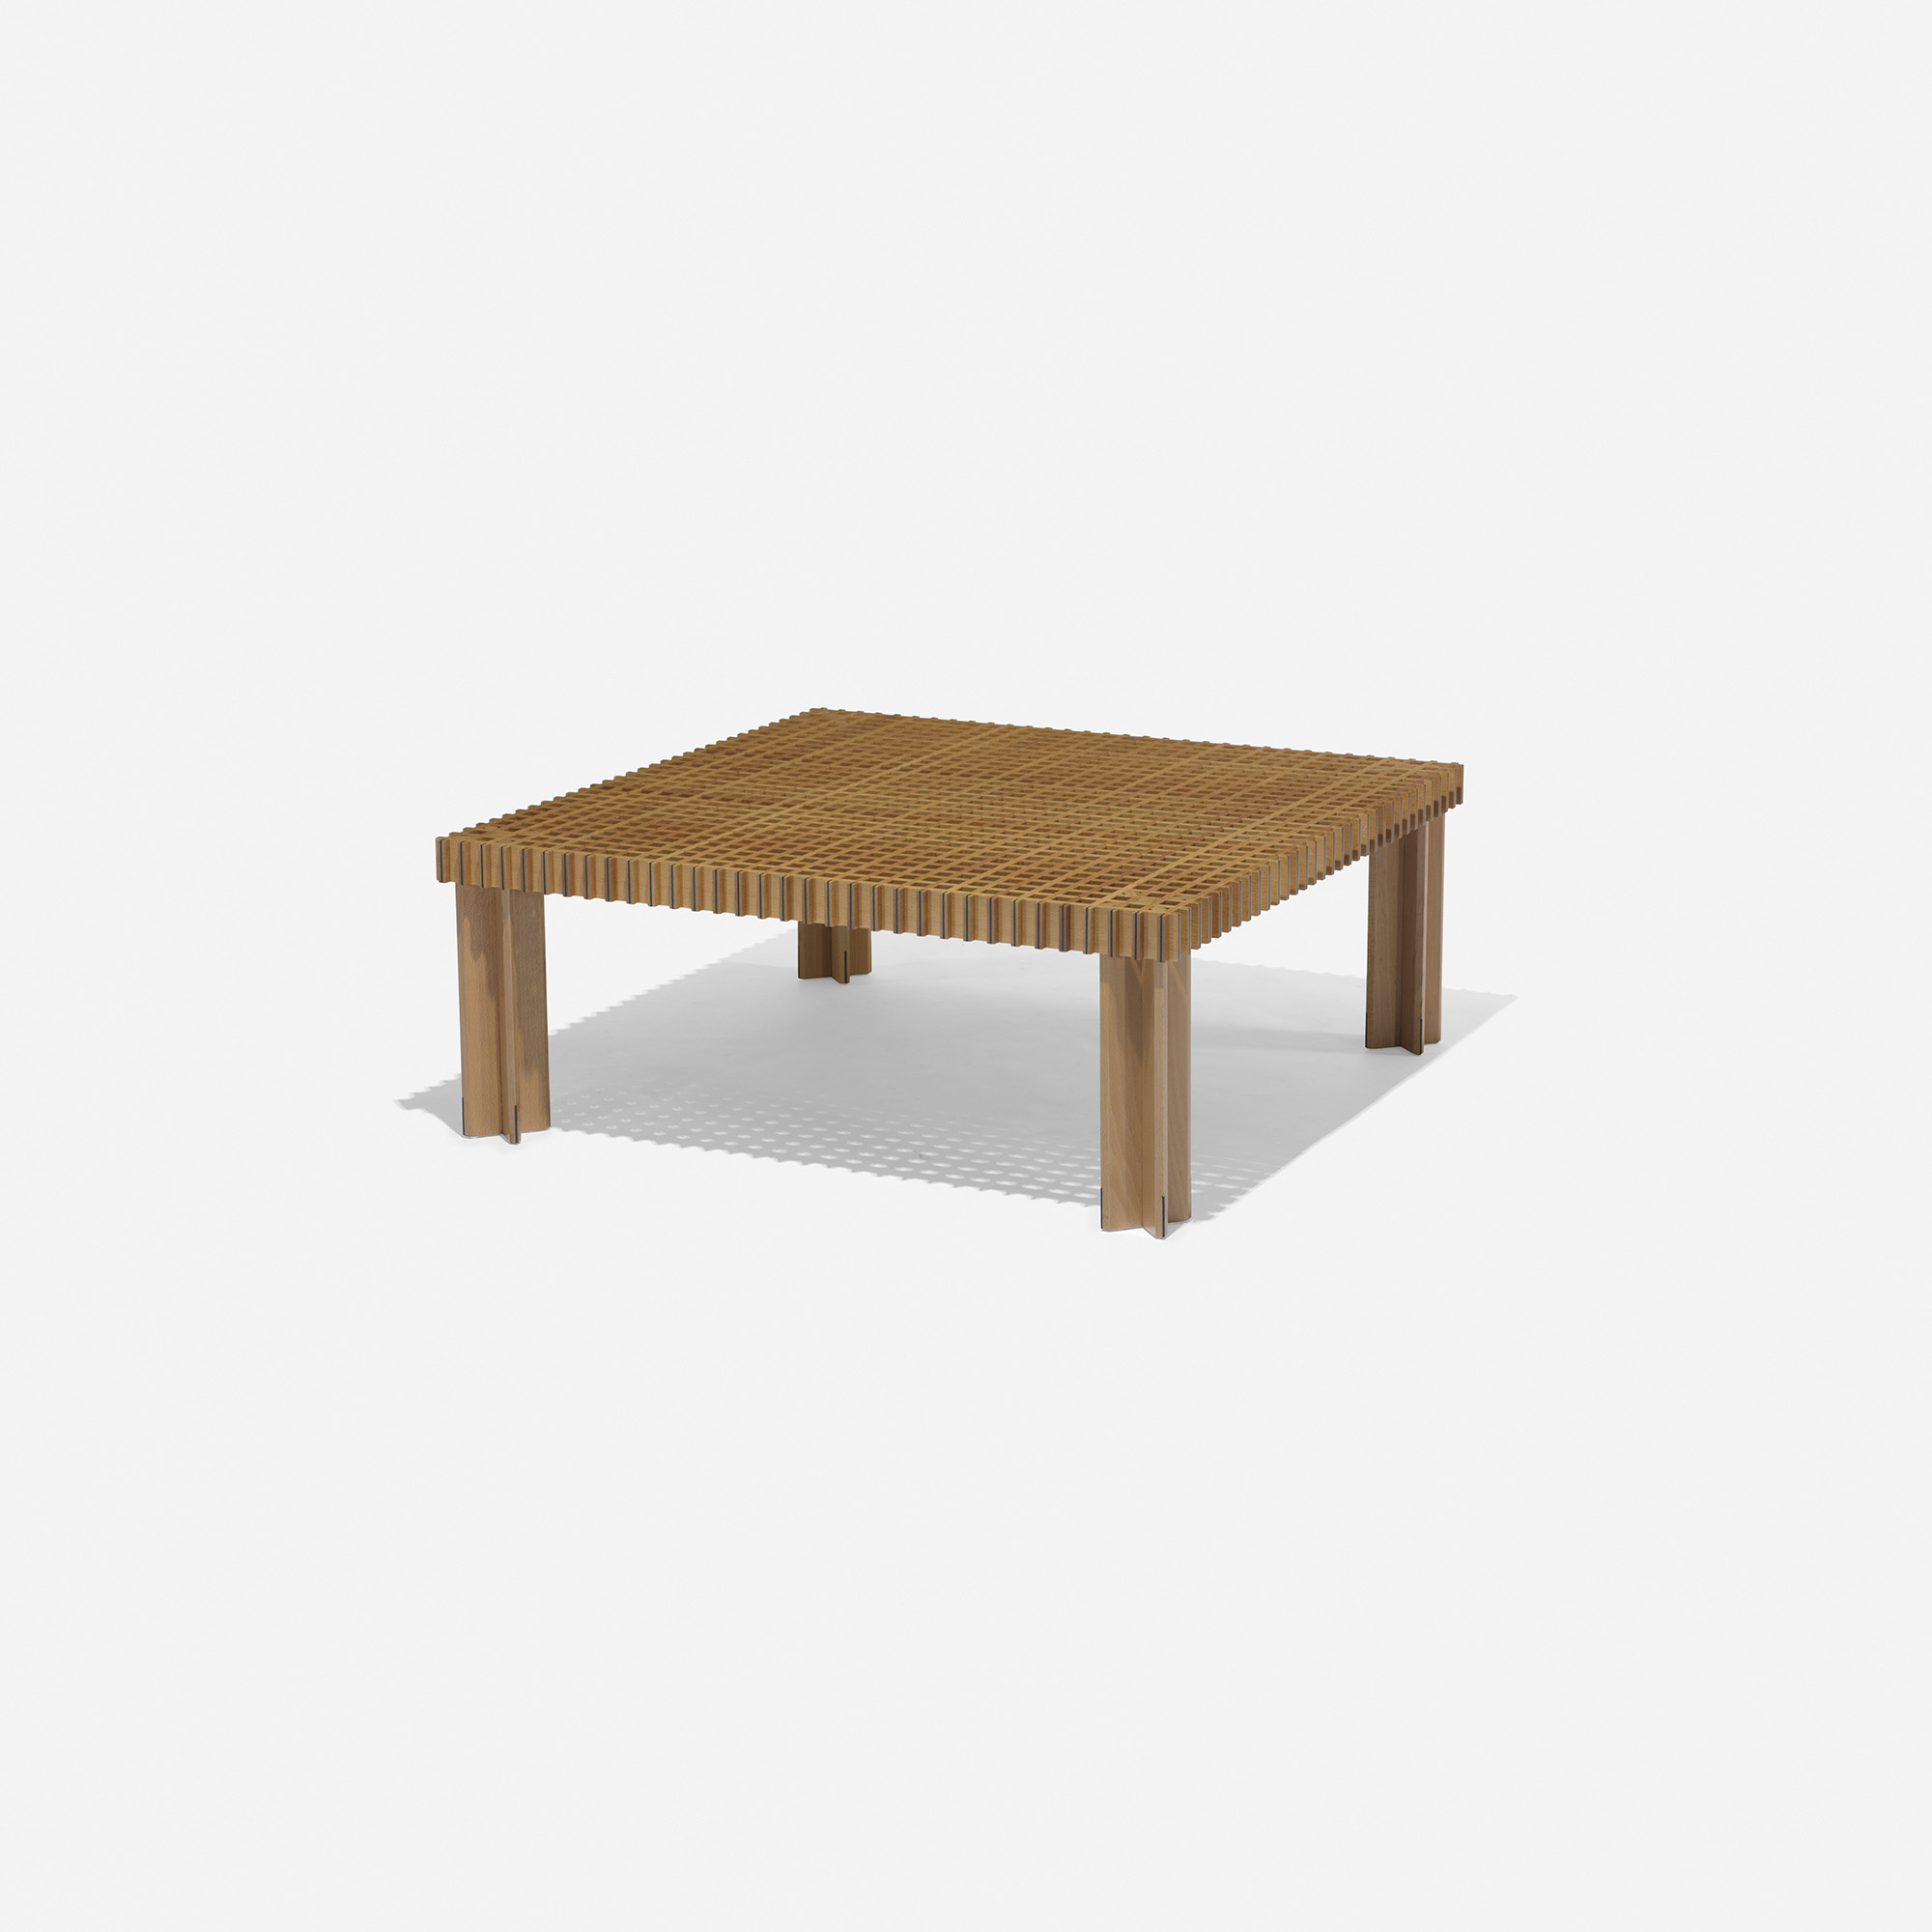 349 Gianfranco Frattini Kyoto coffee table Modern Design 18